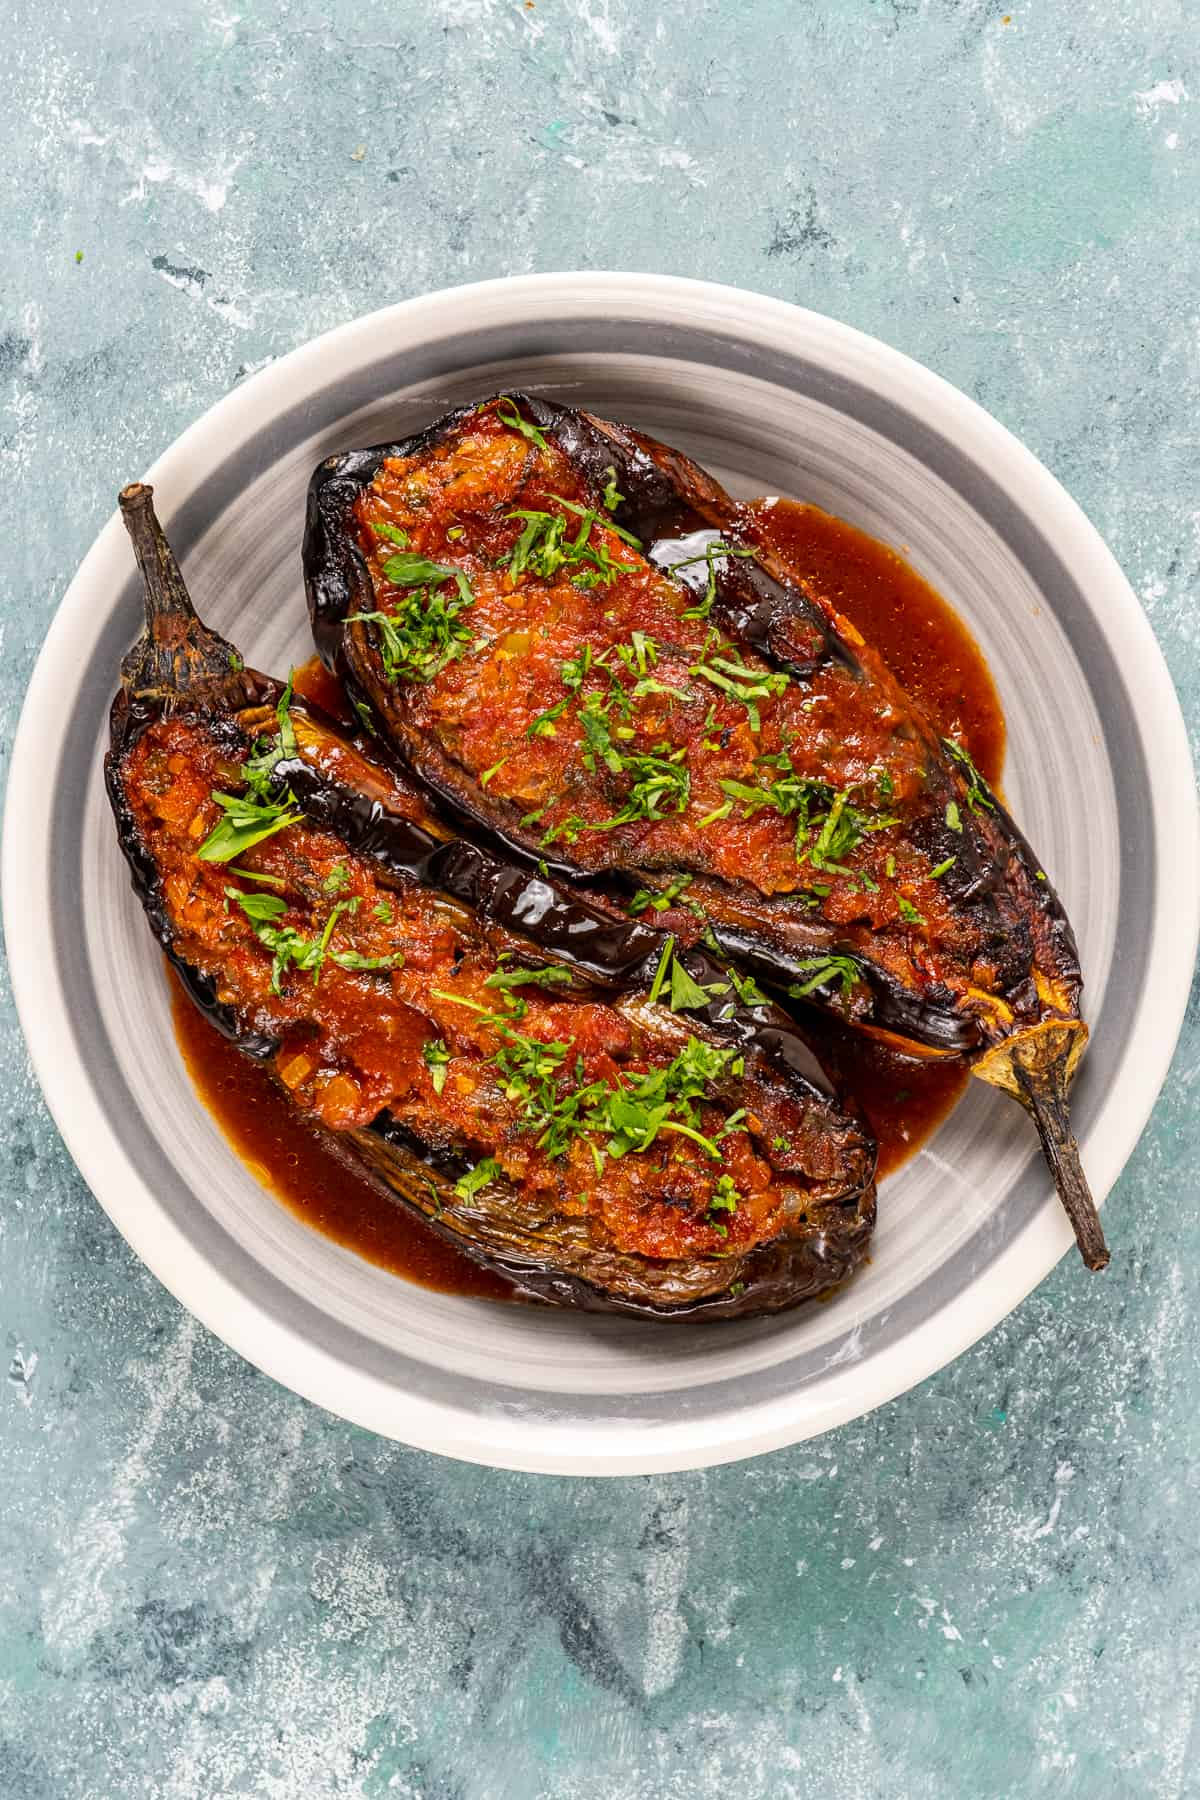 Stuffed roasted eggplants topped with tomato sauce and herbs in a white dish.